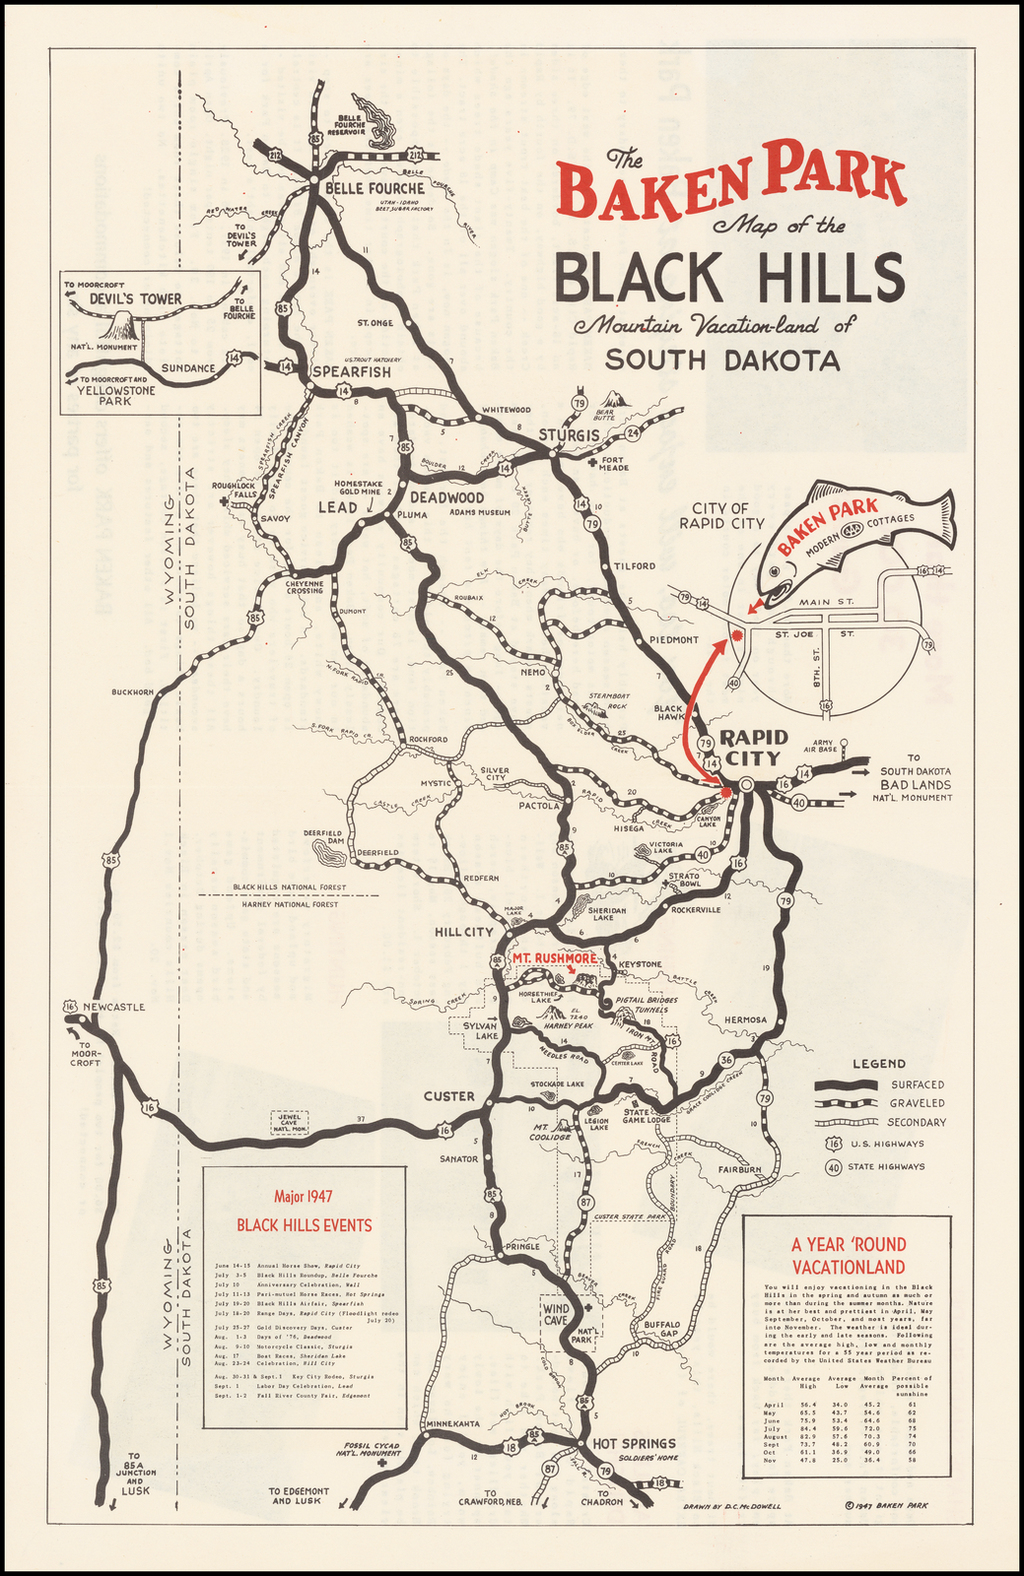 The Baken Park Map of the Black Hills Mountain Vaction-Land of South Dakota By D. C. McDowell